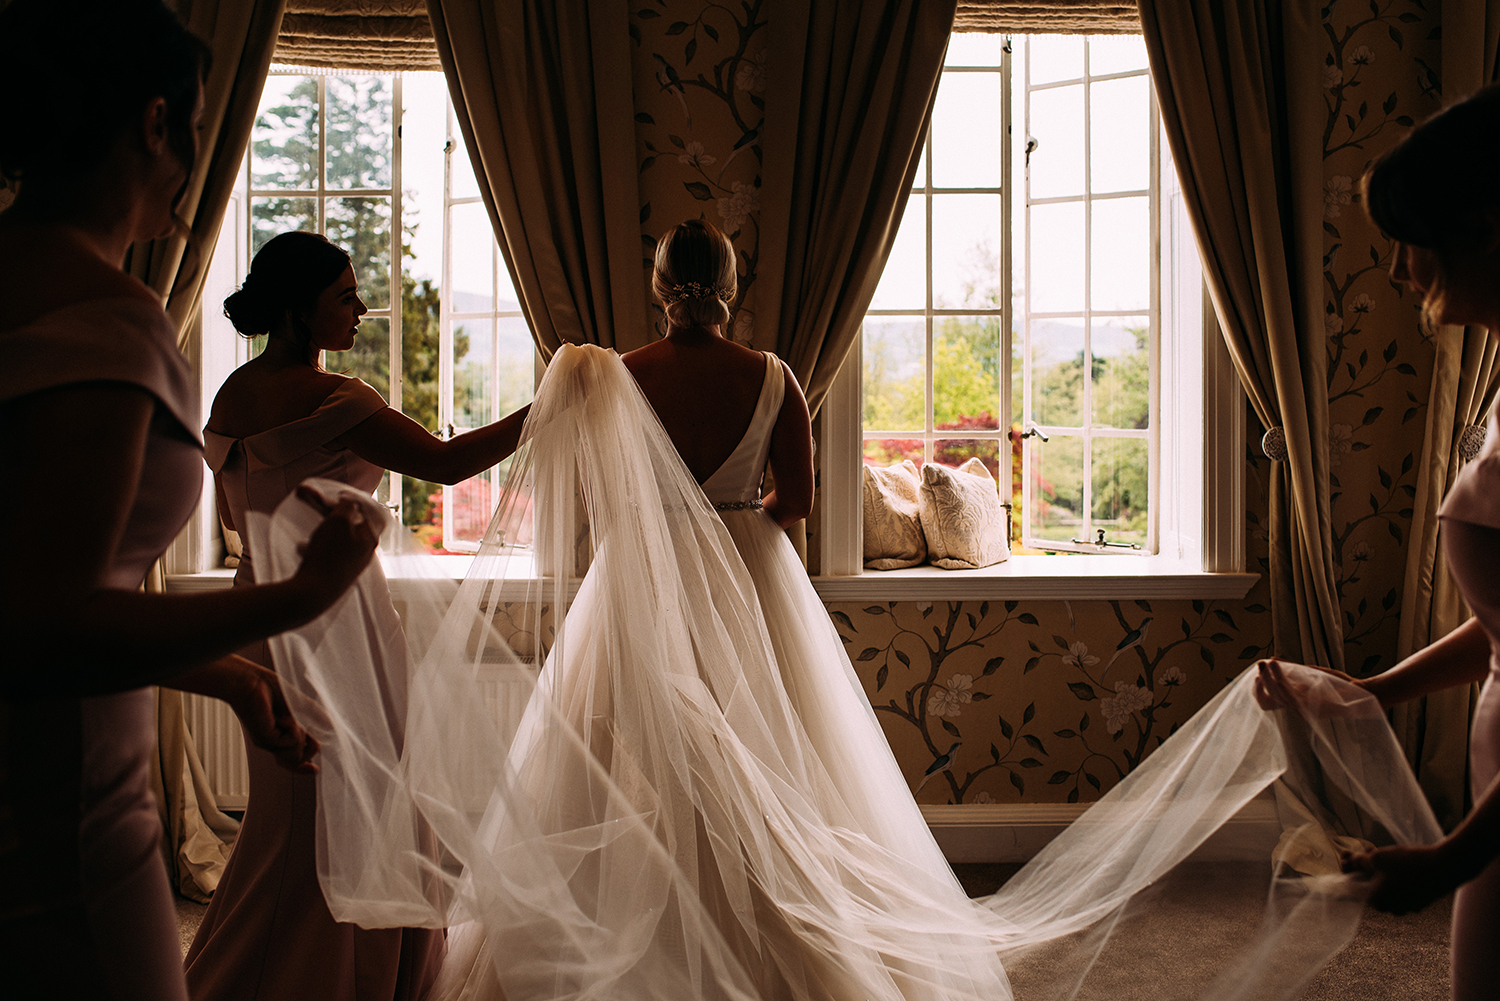 bridesmaids fitting the veil in nice window light